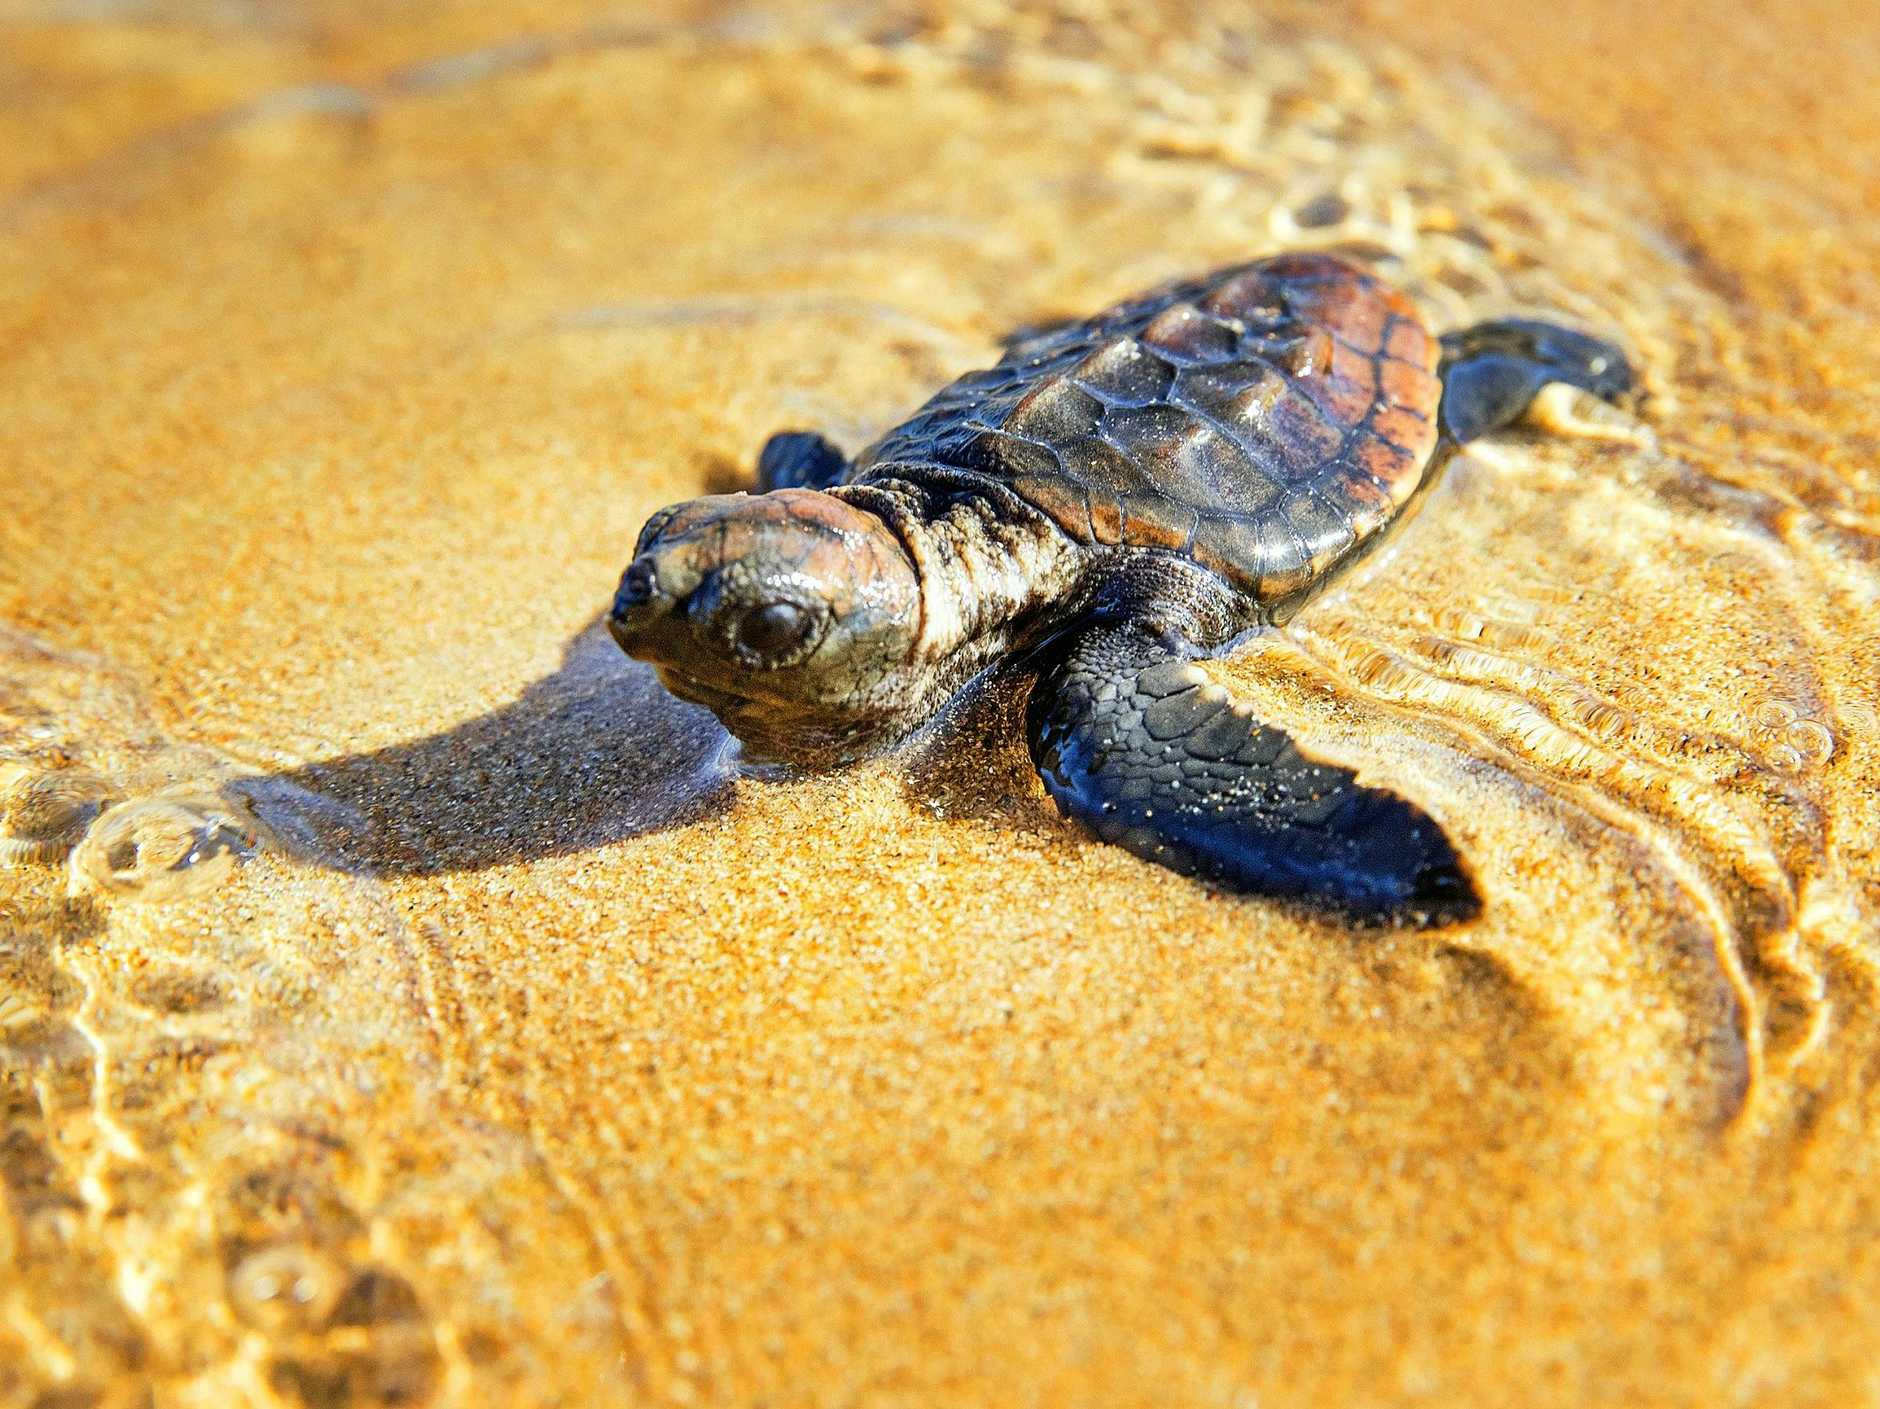 A turtle hatchling makes a break for the ocean after climbing free from their nest at Mon Repos.